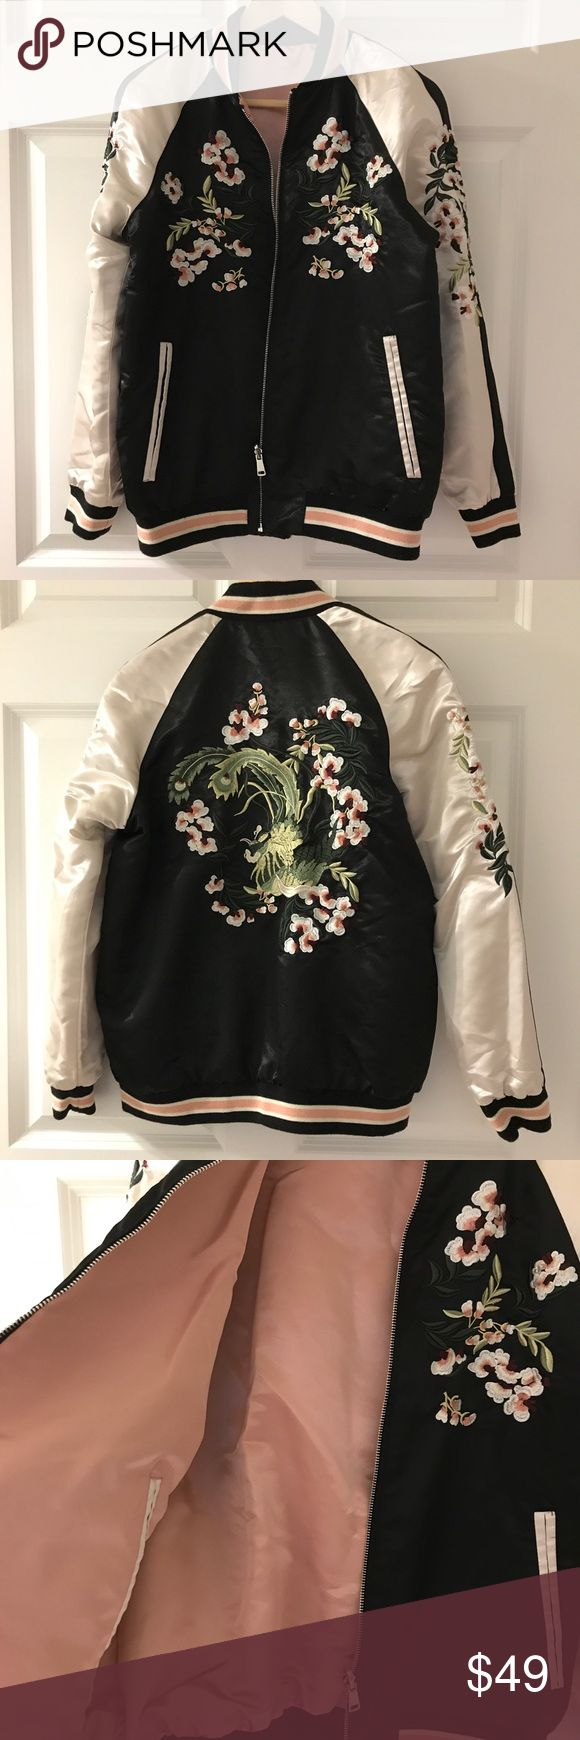 Stradivarius Embroidery Baseball Jacket Gently worn. In a good condition. Two-sided. stradivarius Jackets & Coats